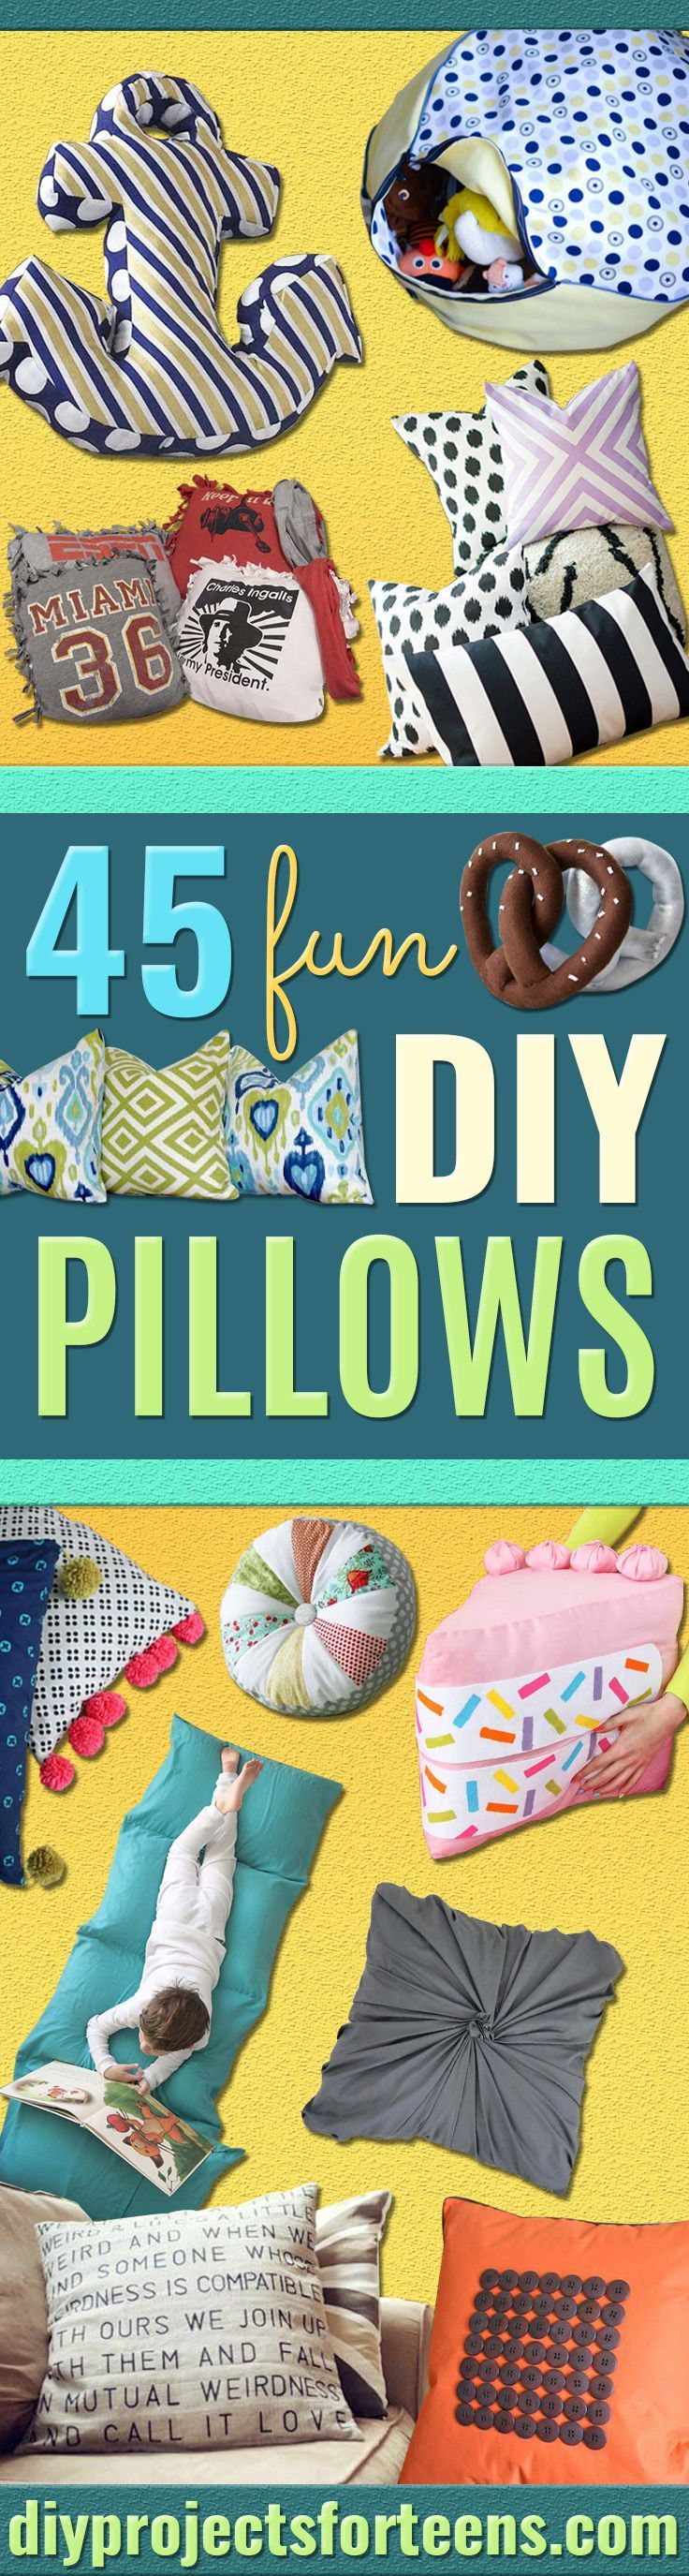 DIY Pillows And Fun Pillow Projects   Creative, Decorative Cases And  Covers, Throw Pillows